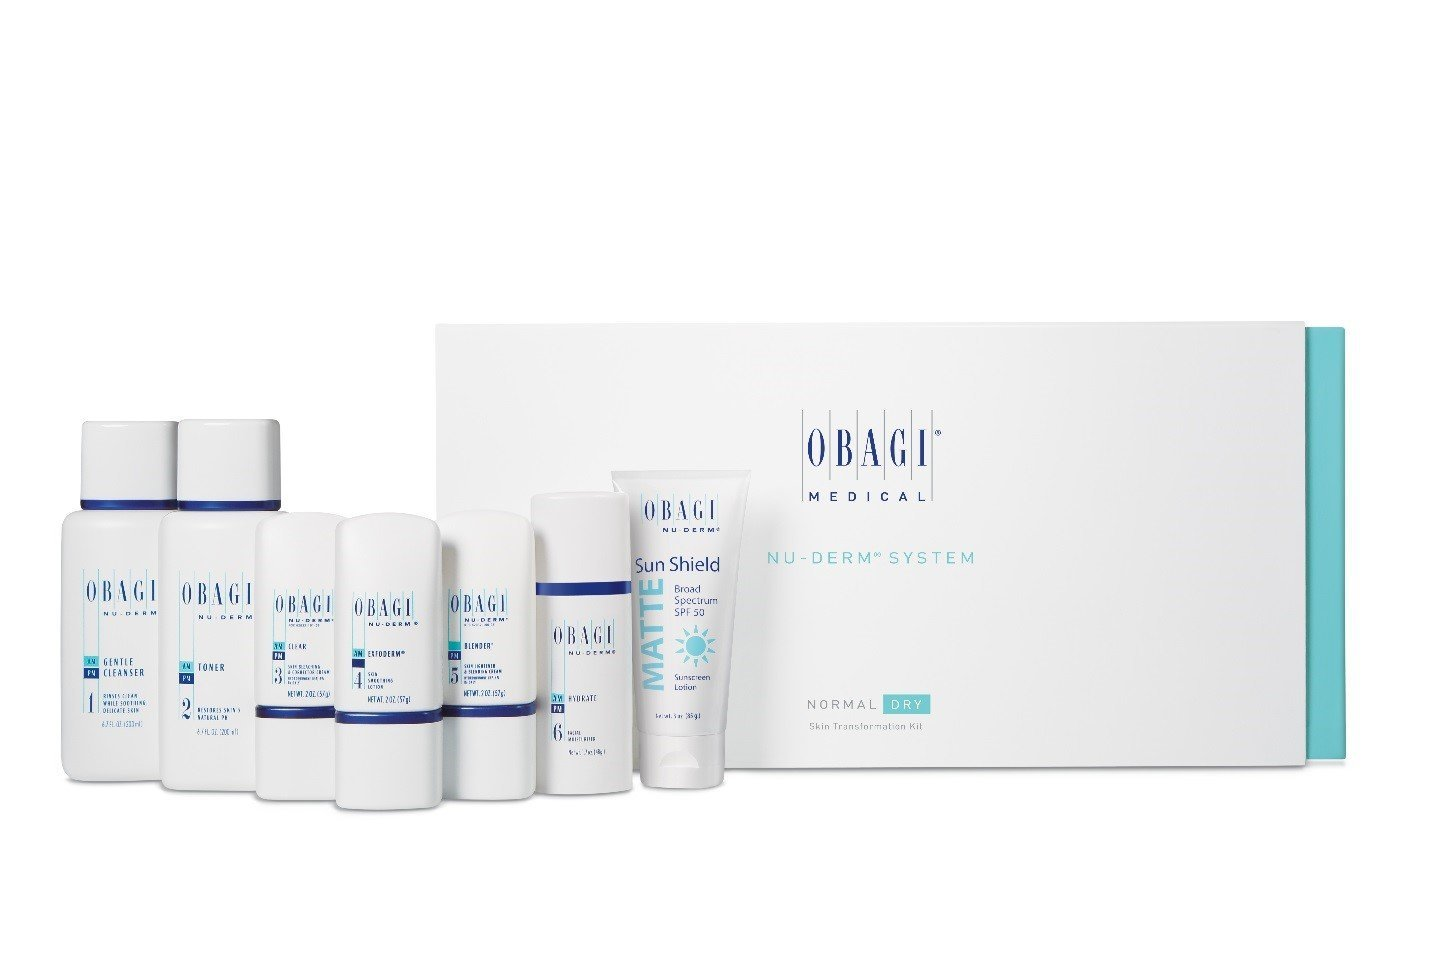 Obagi NuDerm Transformation Kit Norm/Dry